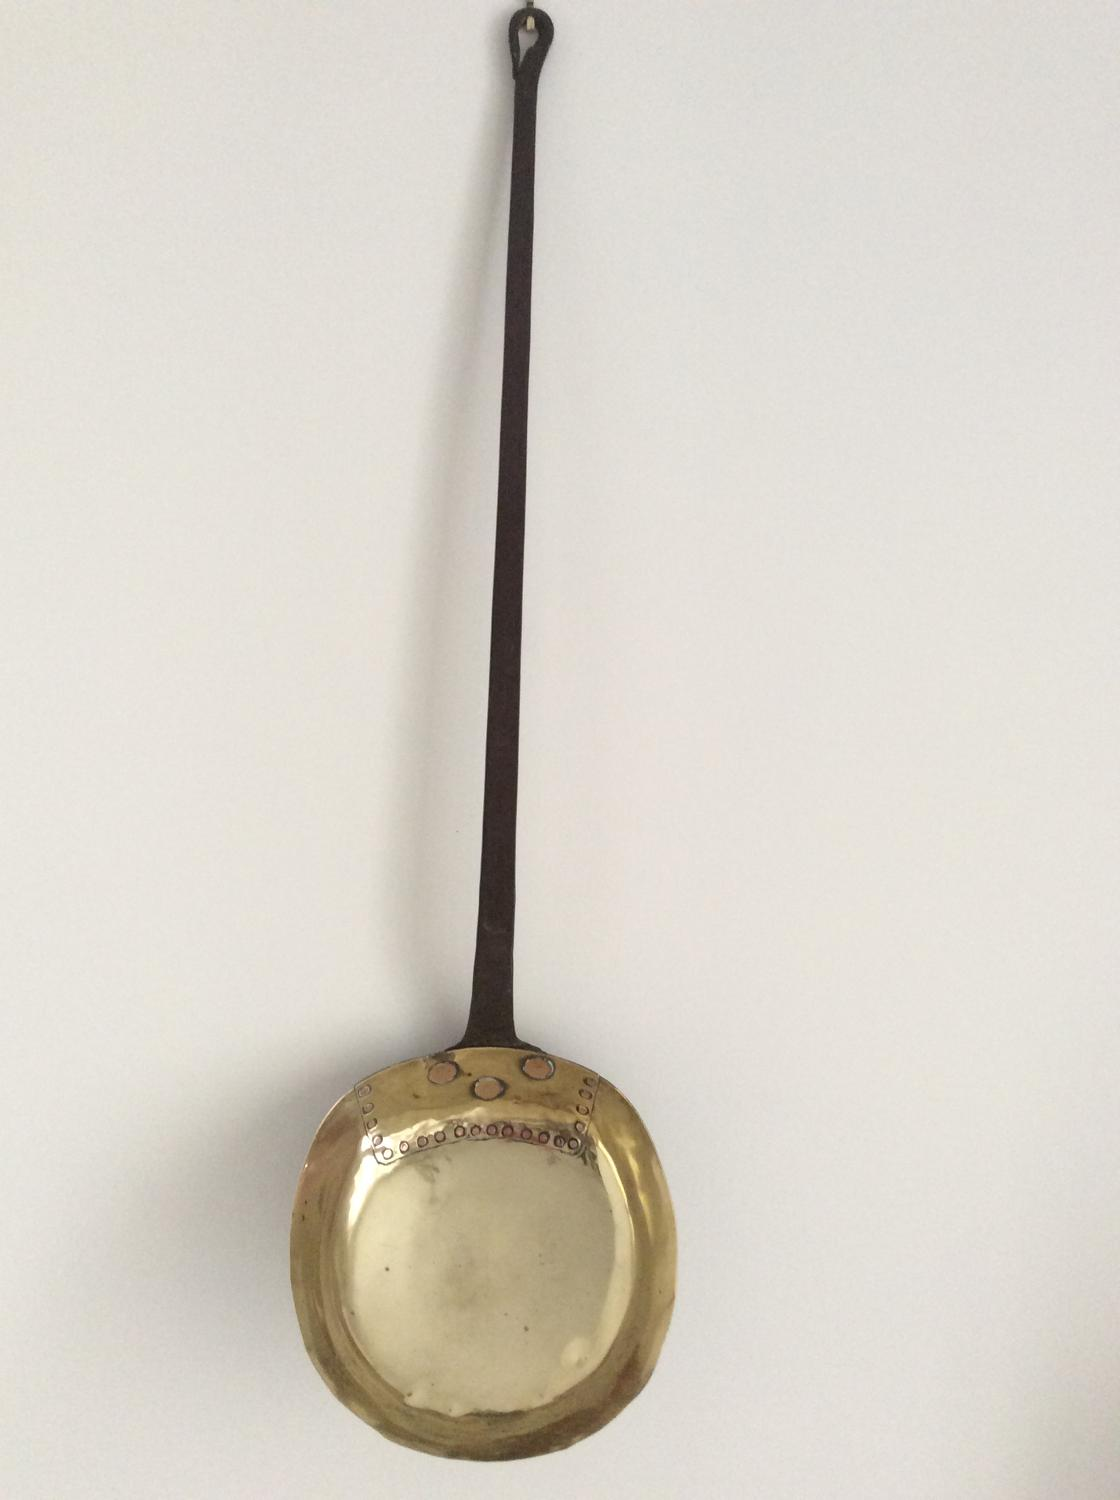 Late 18th/early 19th century brass pan